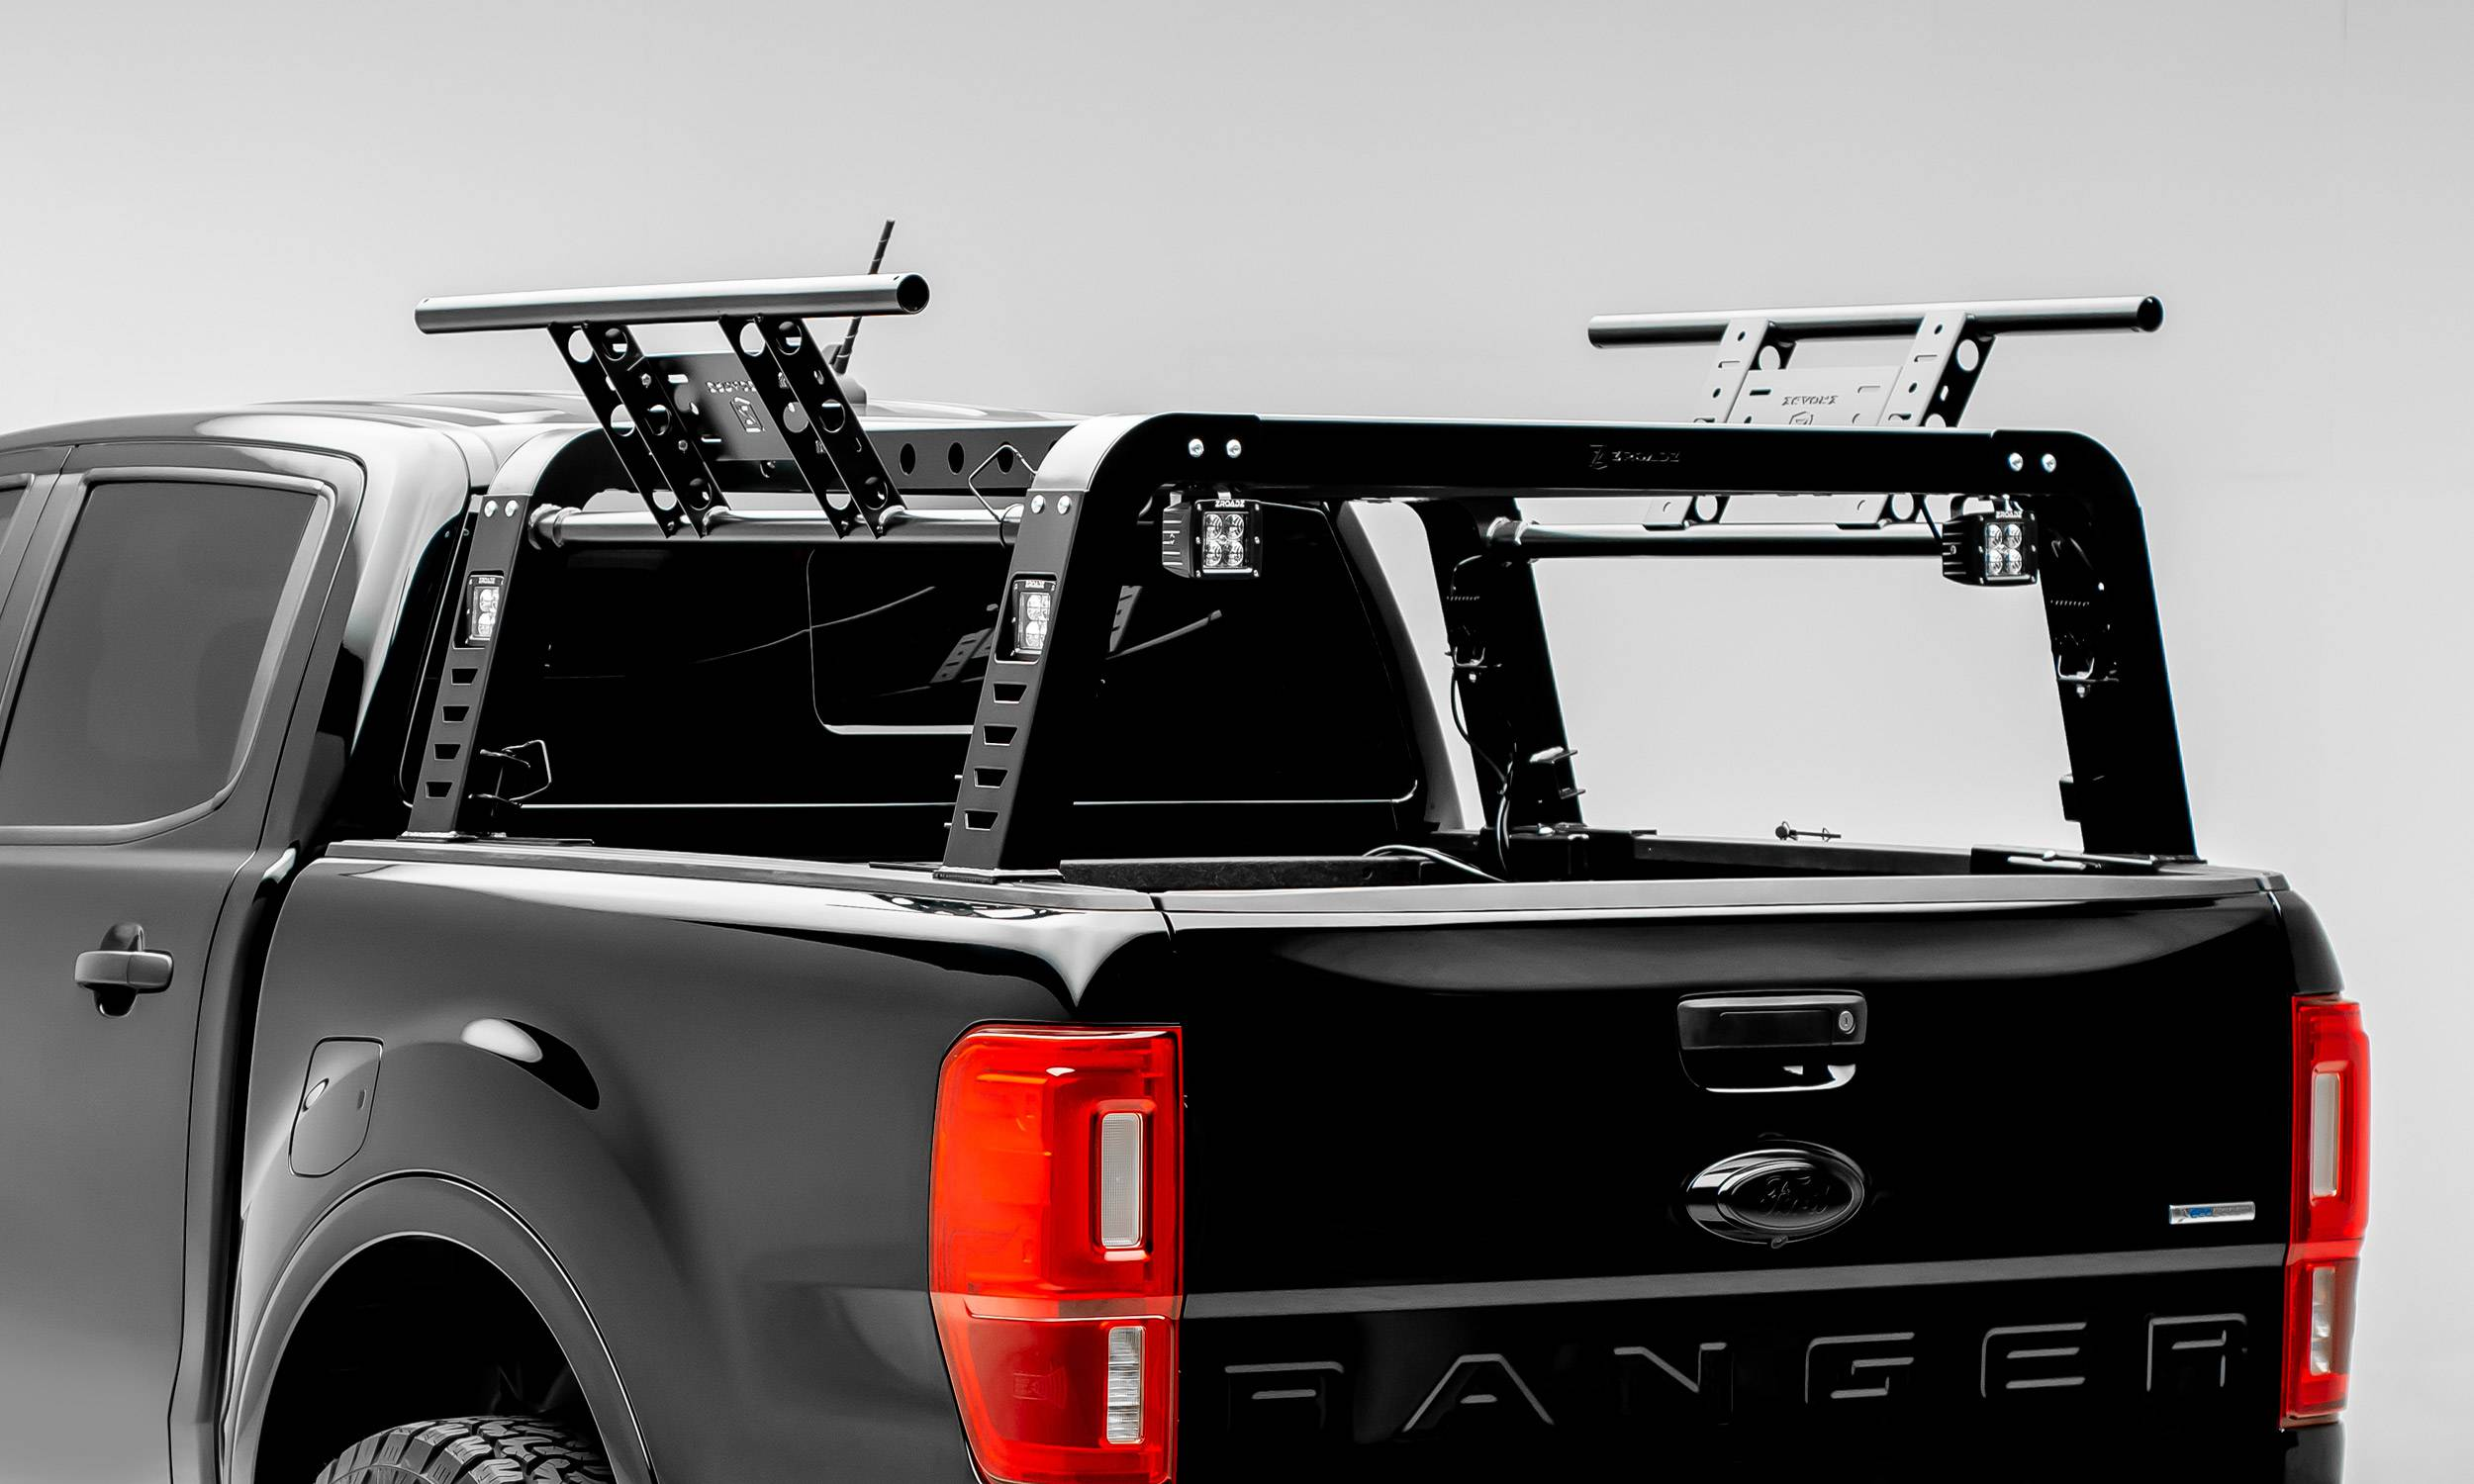 2019 2021 Ford Ranger Overland Access Rack With Side Gates With 4 3 Inch Zroadz Led Pod Lights Pn Z835101